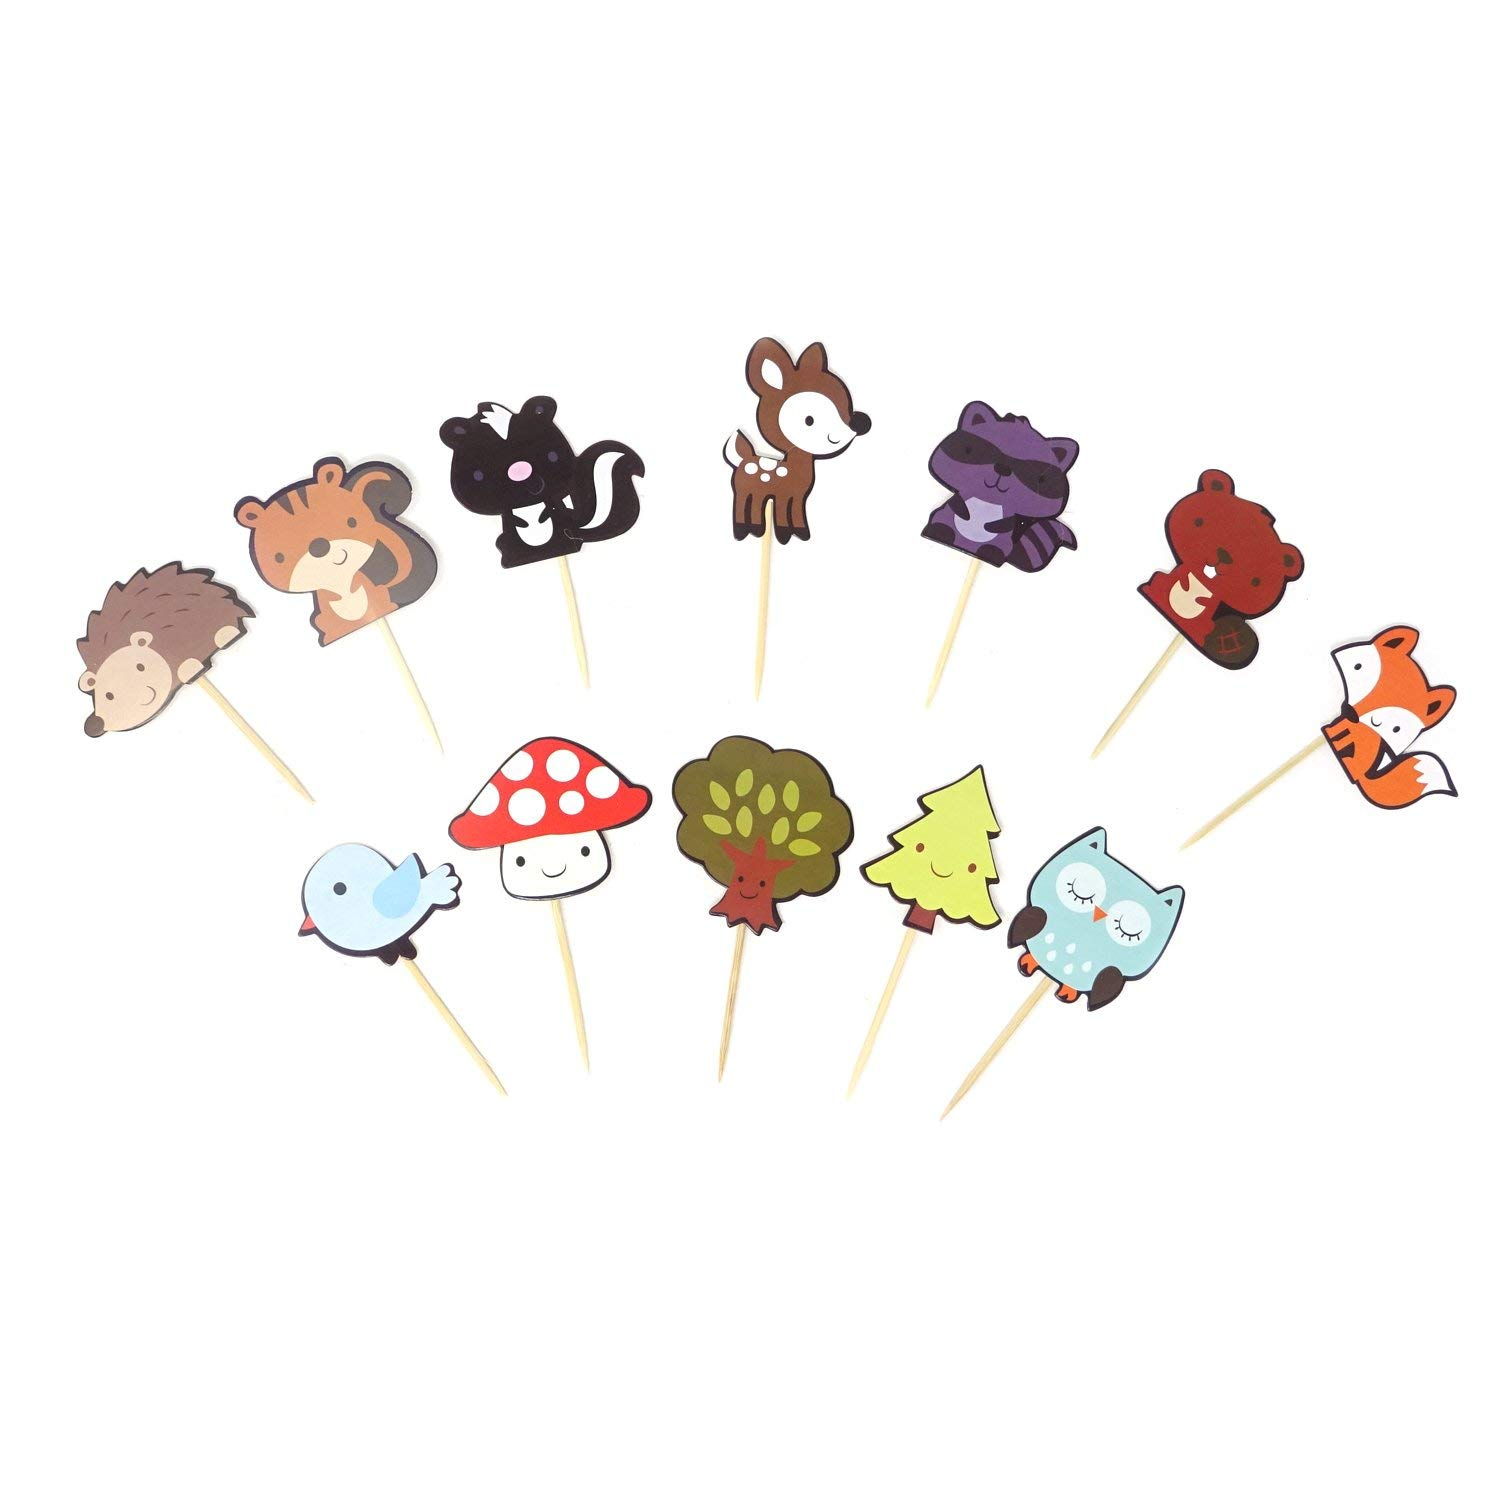 Honbay 36PCS Cute Woodland Creatures Theme Dessert Muffin Cake Cupcake Toppers Picks Forest Animal Friends Cake Decoration for Kids Woodland Theme Party, Baby Shower or Birthday Party Decoration